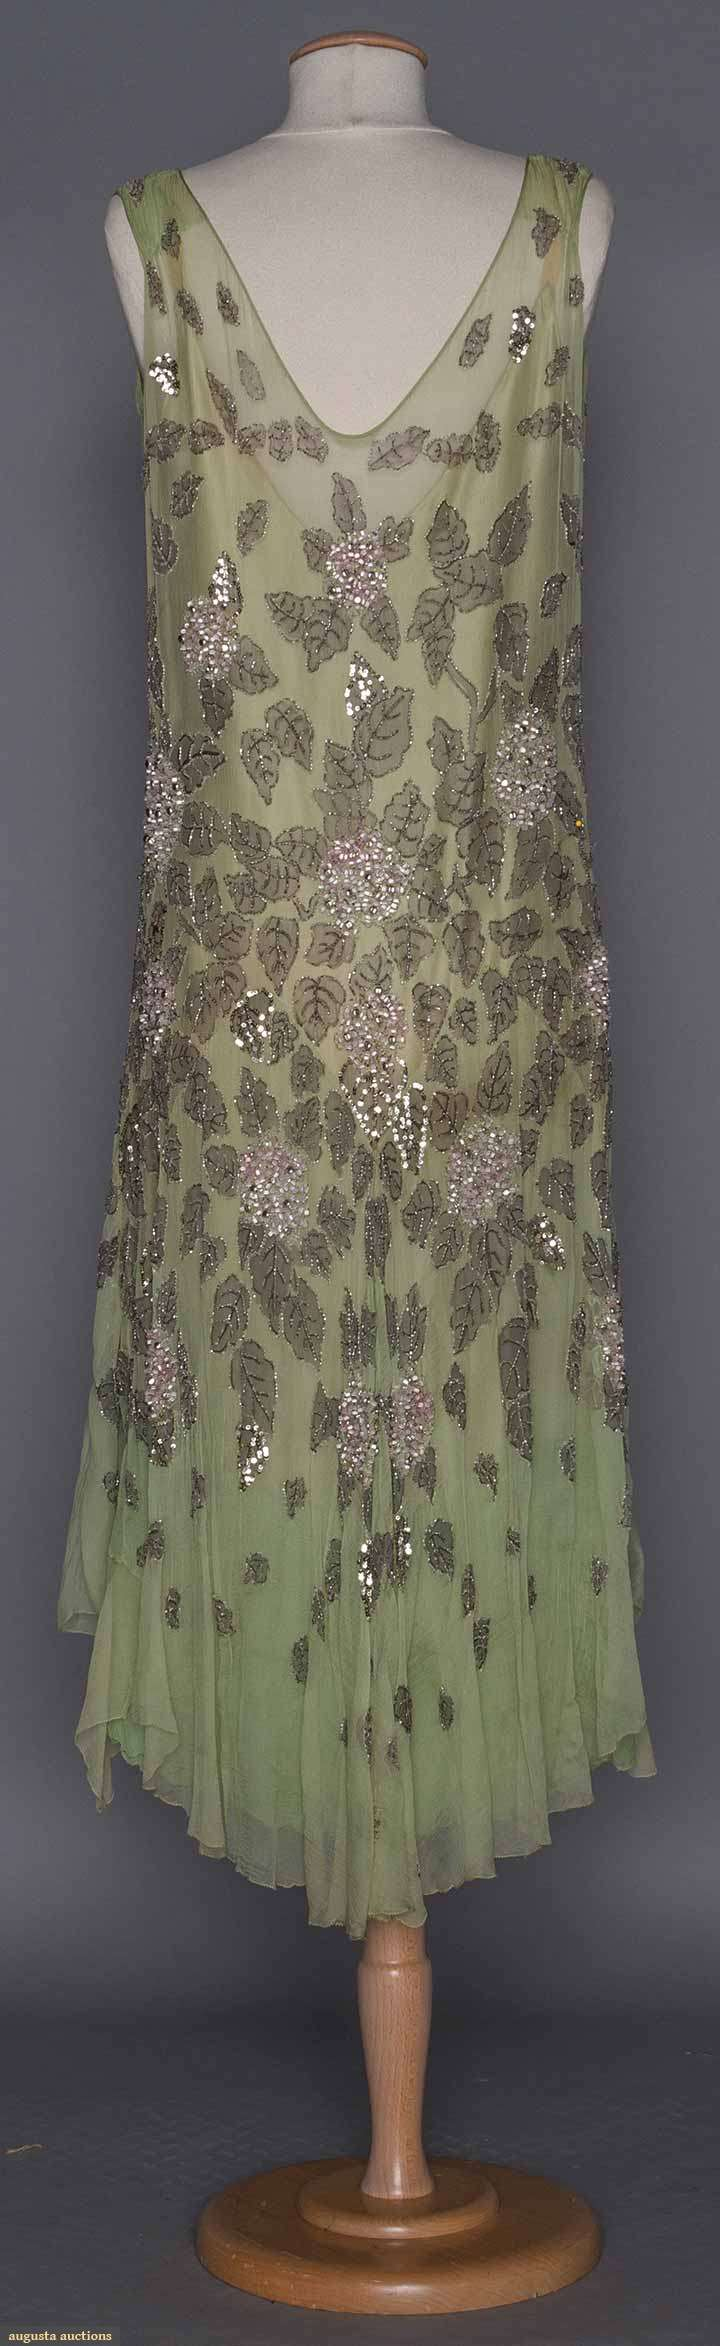 1920s BEADED GREEN EVENING DRESS. Pale mint chiffon, floral & leaf embroidery w/ silver sequins & blush pink barrel beads, multi-layered chiffon under dress. Back